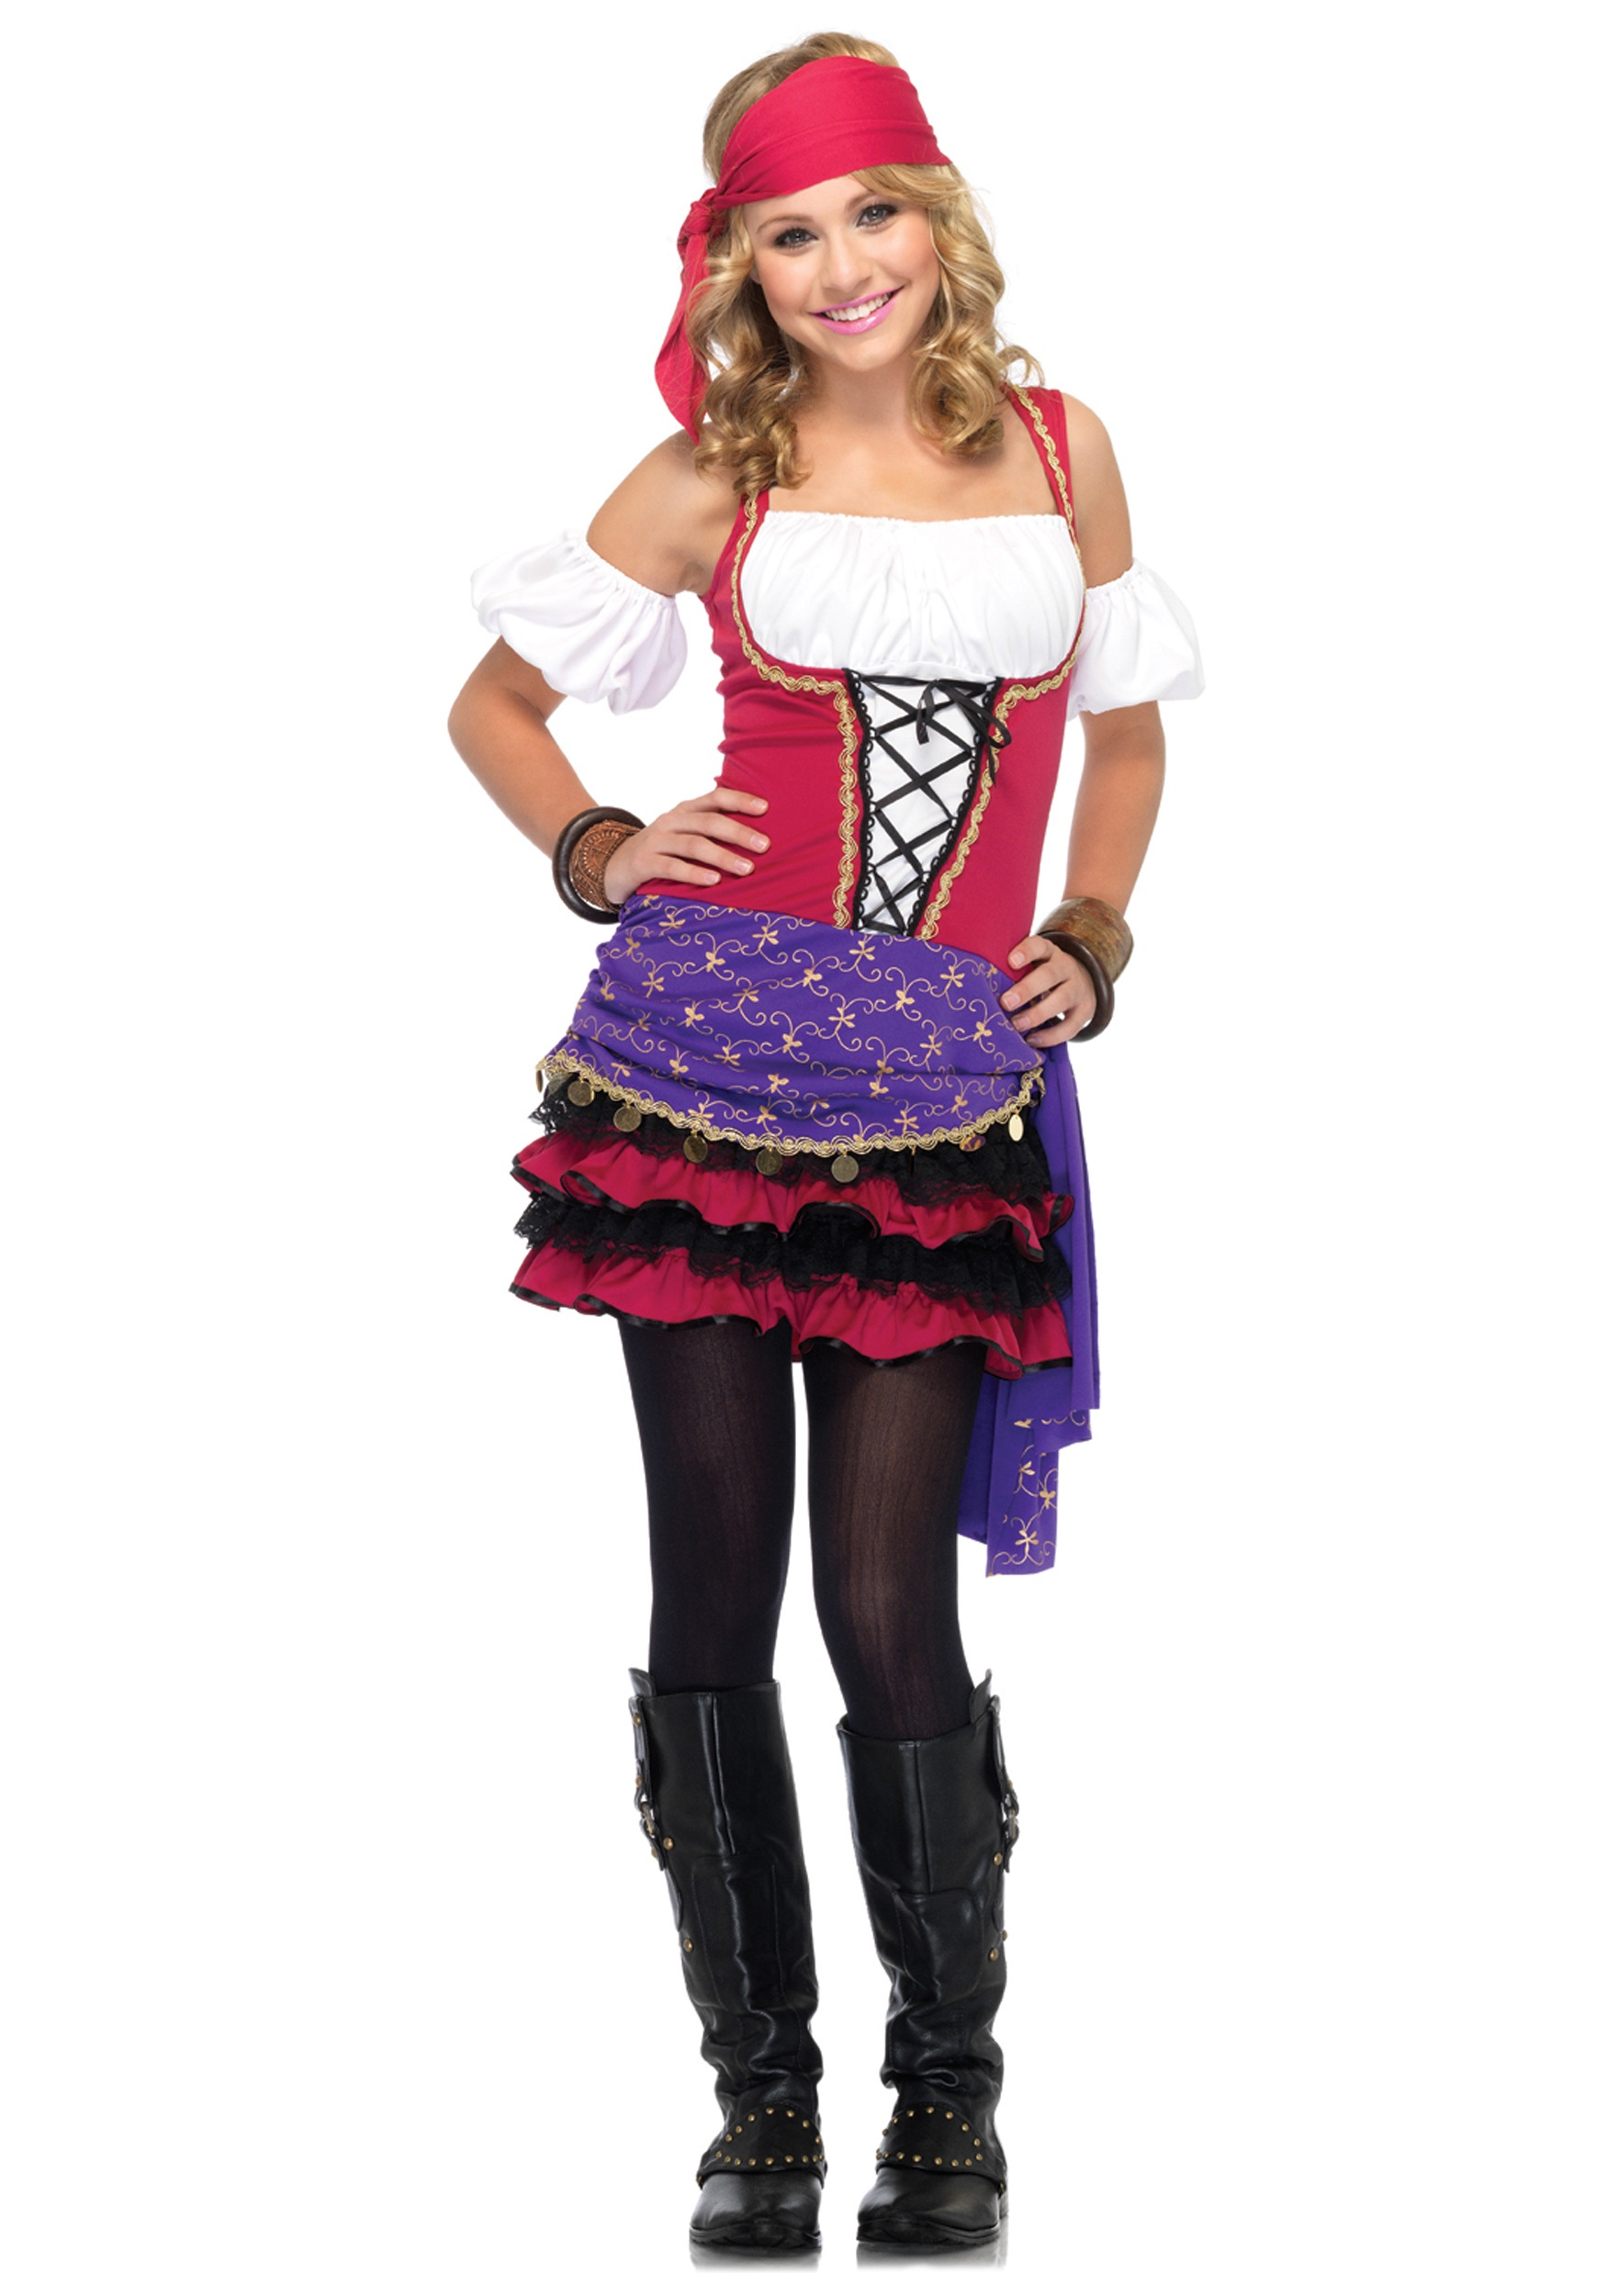 Teen Crystal Ball Gypsy Costume  sc 1 st  Halloween Costumes & Teen Crystal Ball Gypsy Costume - Halloween Costumes